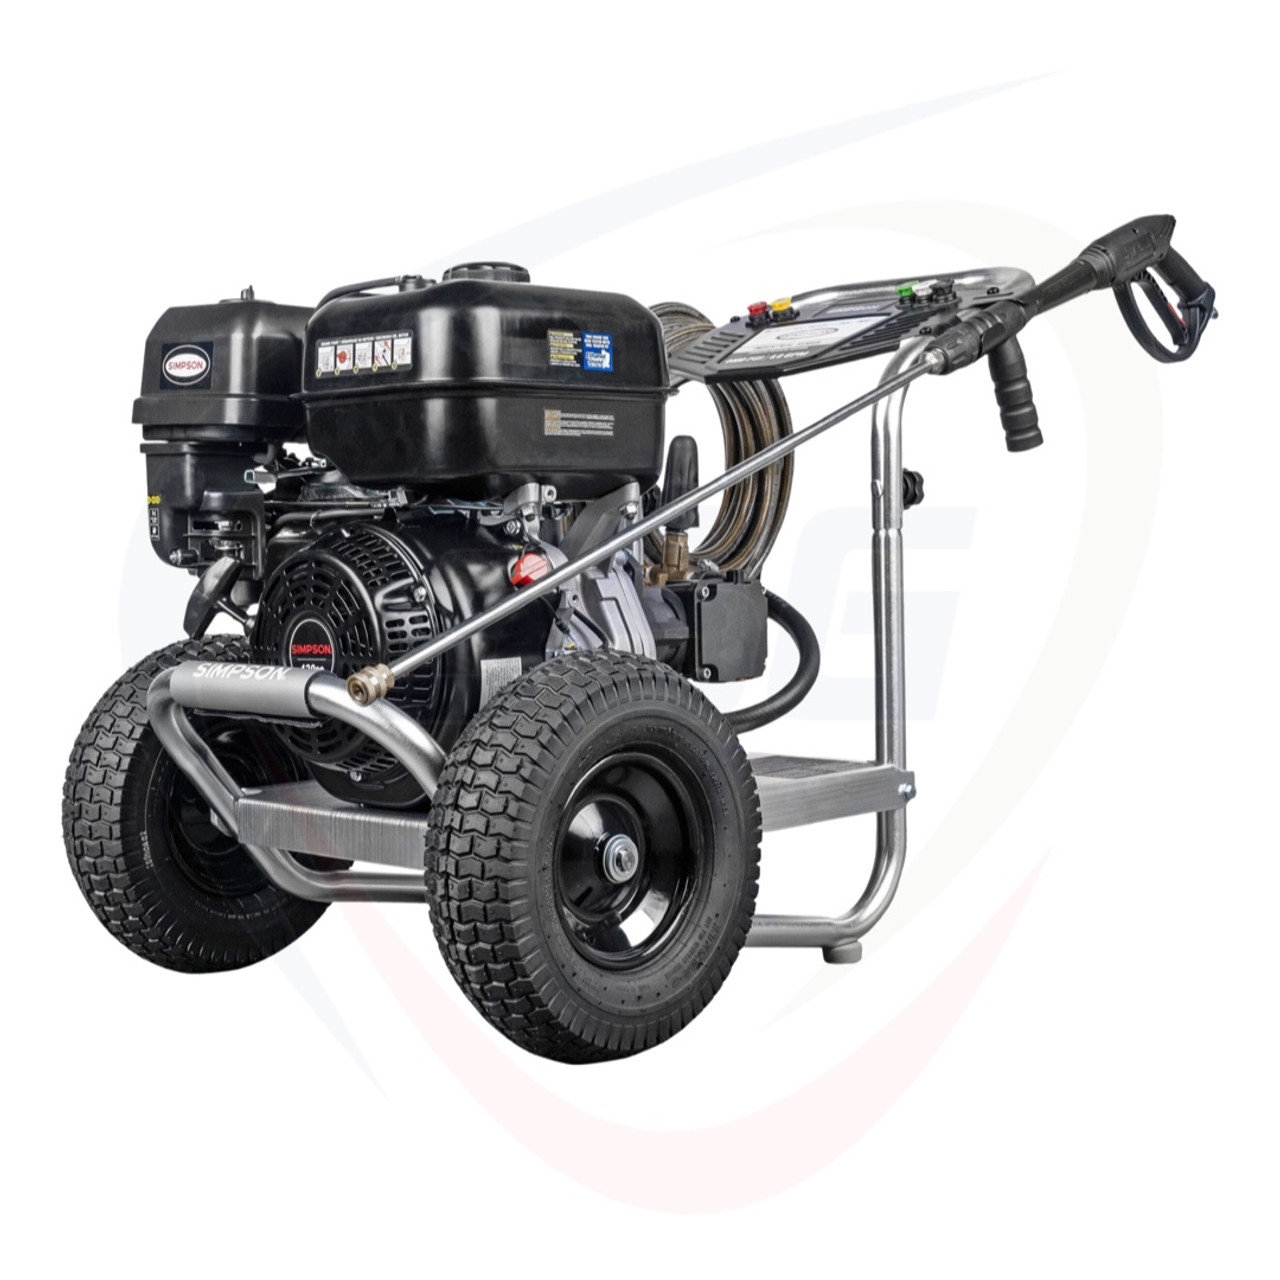 Simpson Industrial Pressure Washer IS61029